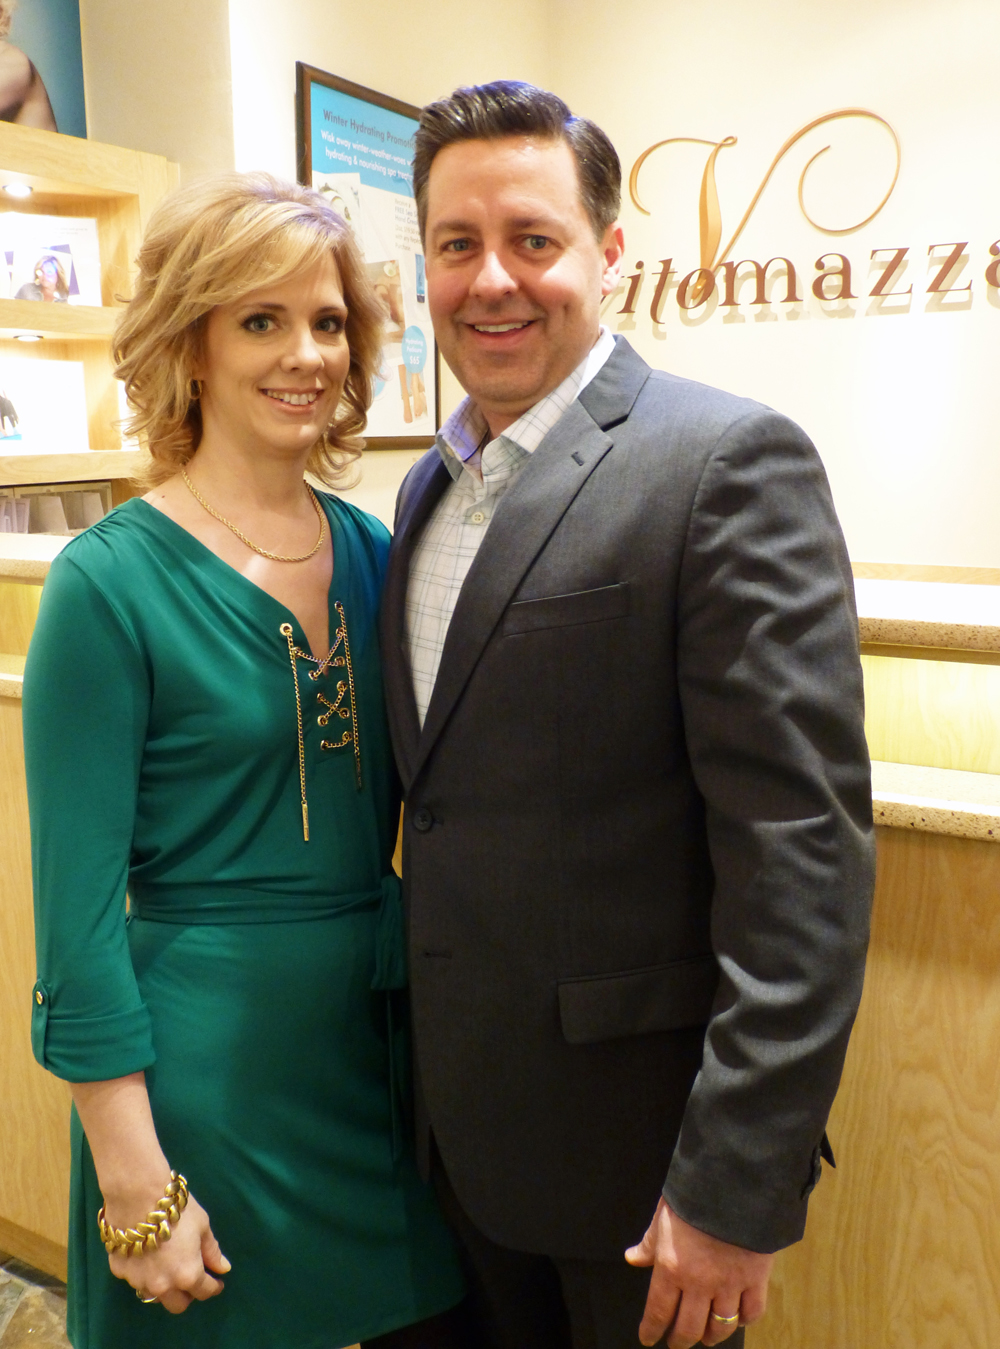 Vito Mazza Salon & Spa Raises $17,500 for Hurricane Sandy Victims